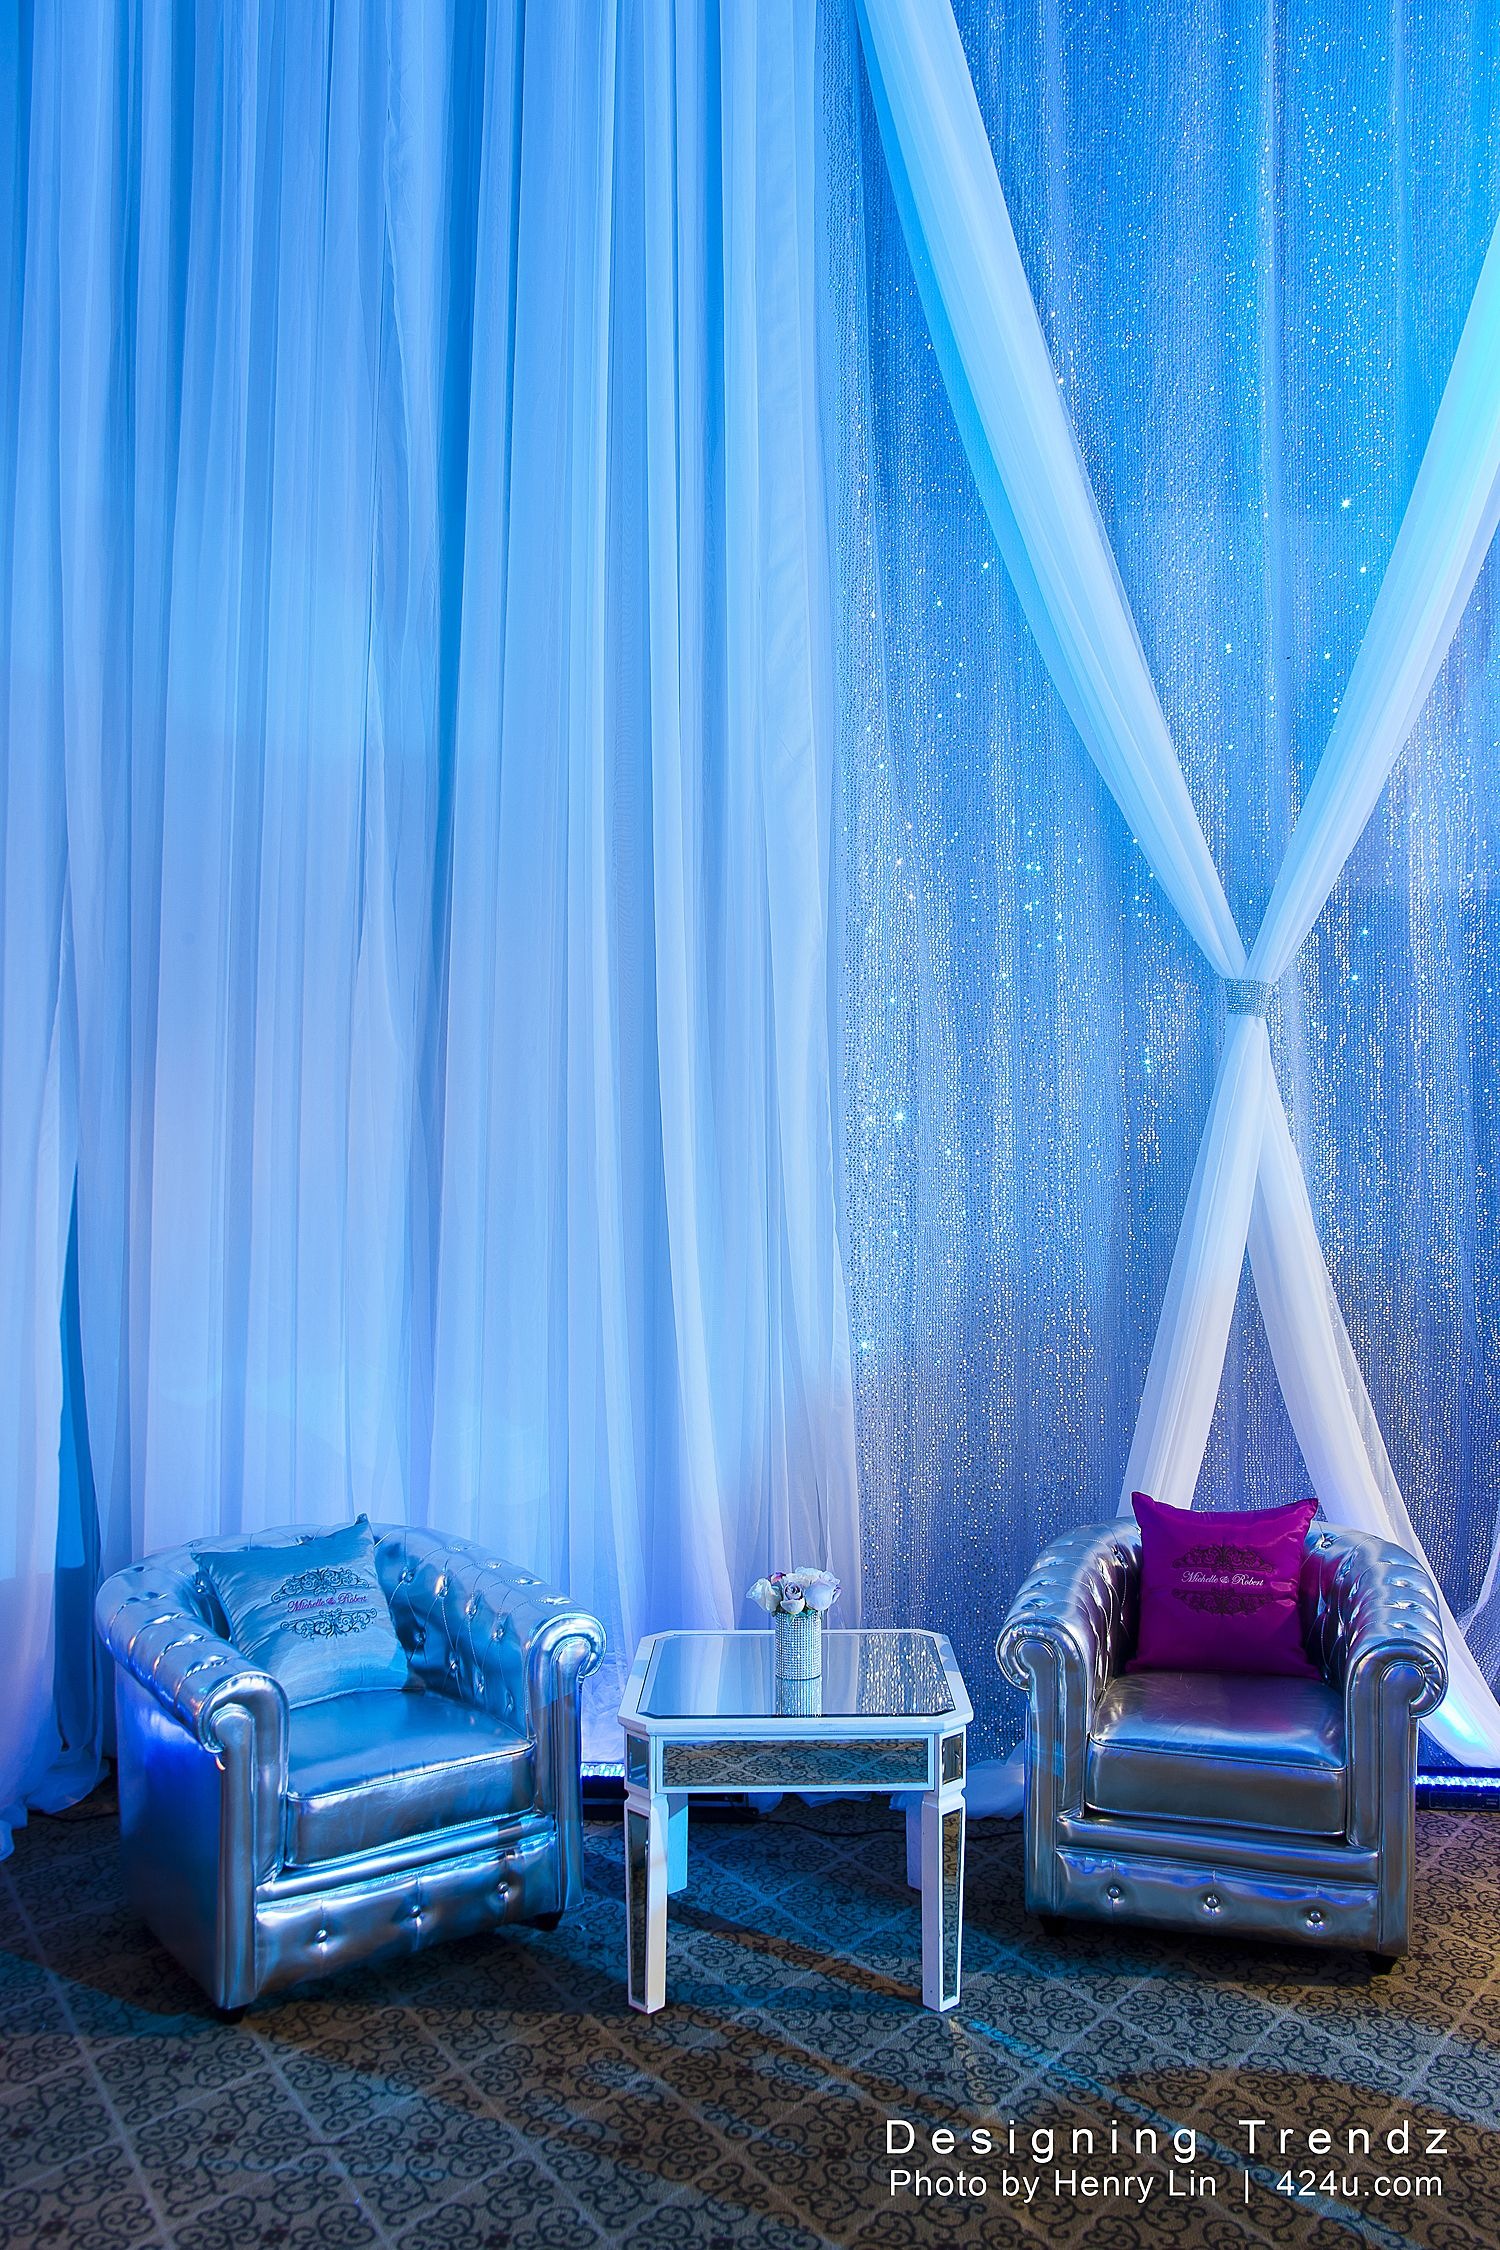 blue lighting with simple yet fun draping - by designing trendz